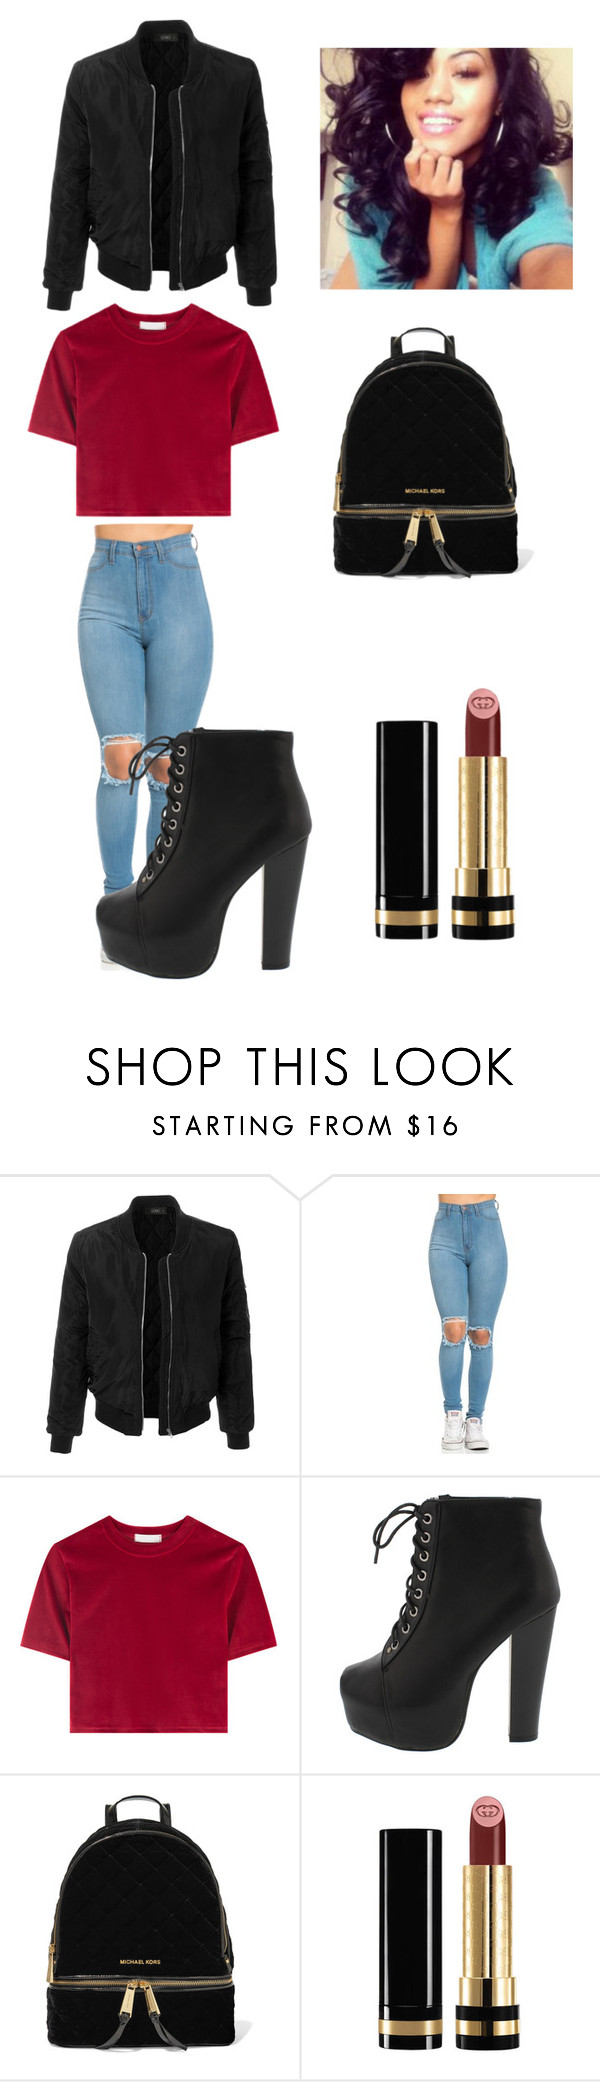 """""""school outift"""" by saucykay-779 ❤ liked on Polyvore featuring LE3NO, MICHAEL Michael Kors and Gucci"""